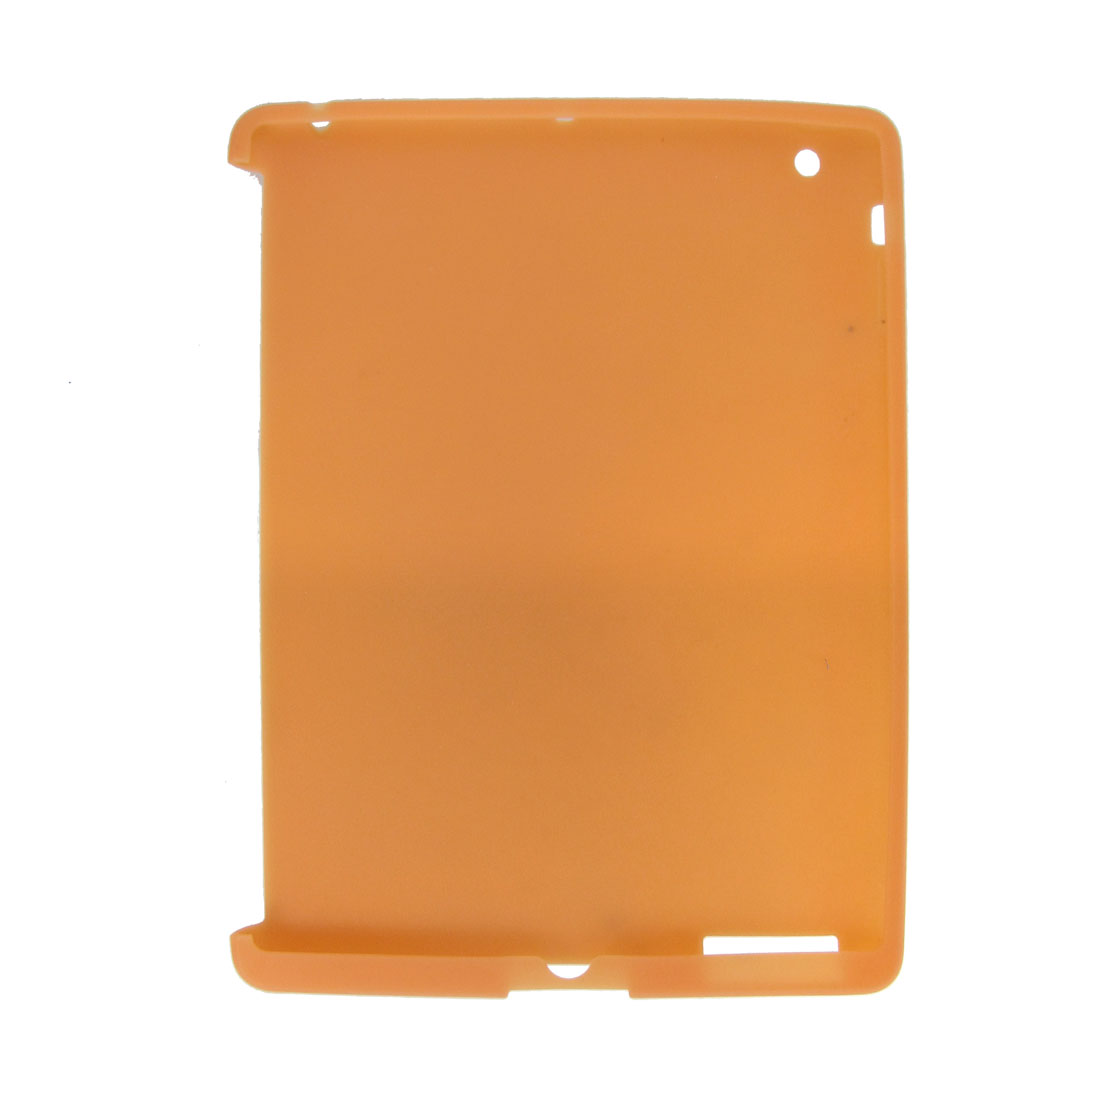 Silicone Skin Case Cover Orange for Apple iPad 3rd Generation